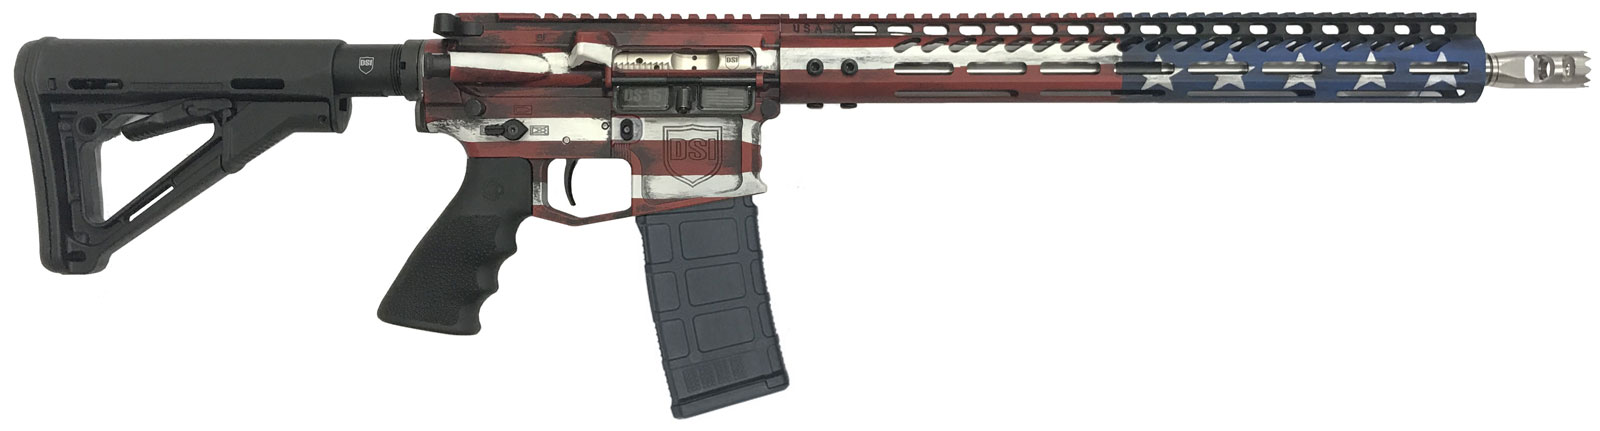 "DS-15 Signature 5.56 ""Freedom Flag"" Standard Rifle"